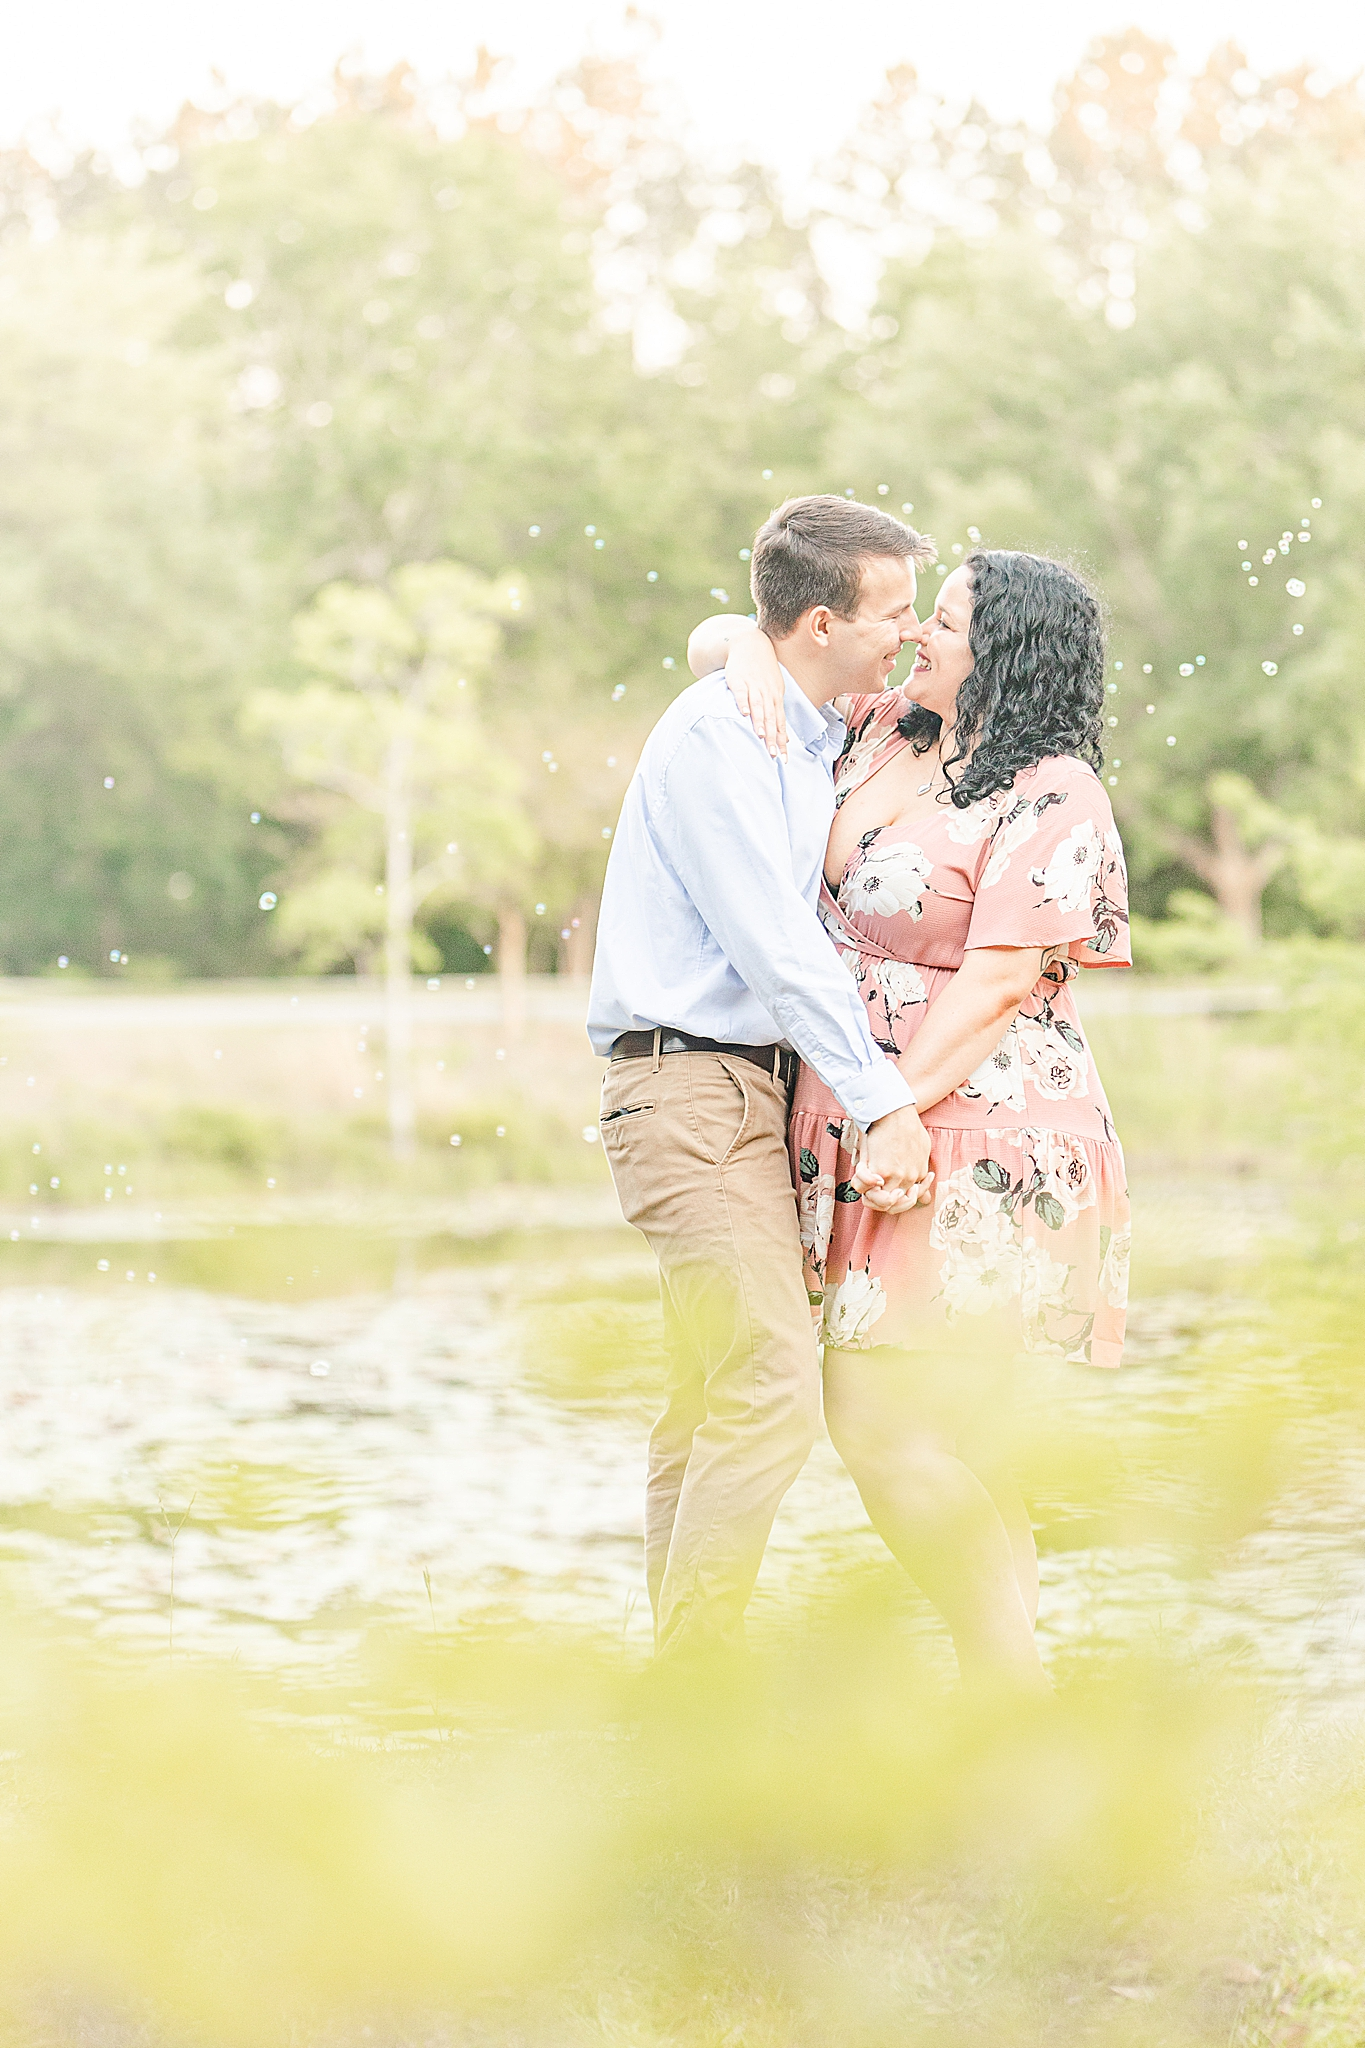 engaged couple dances in park during Alabama engagement session